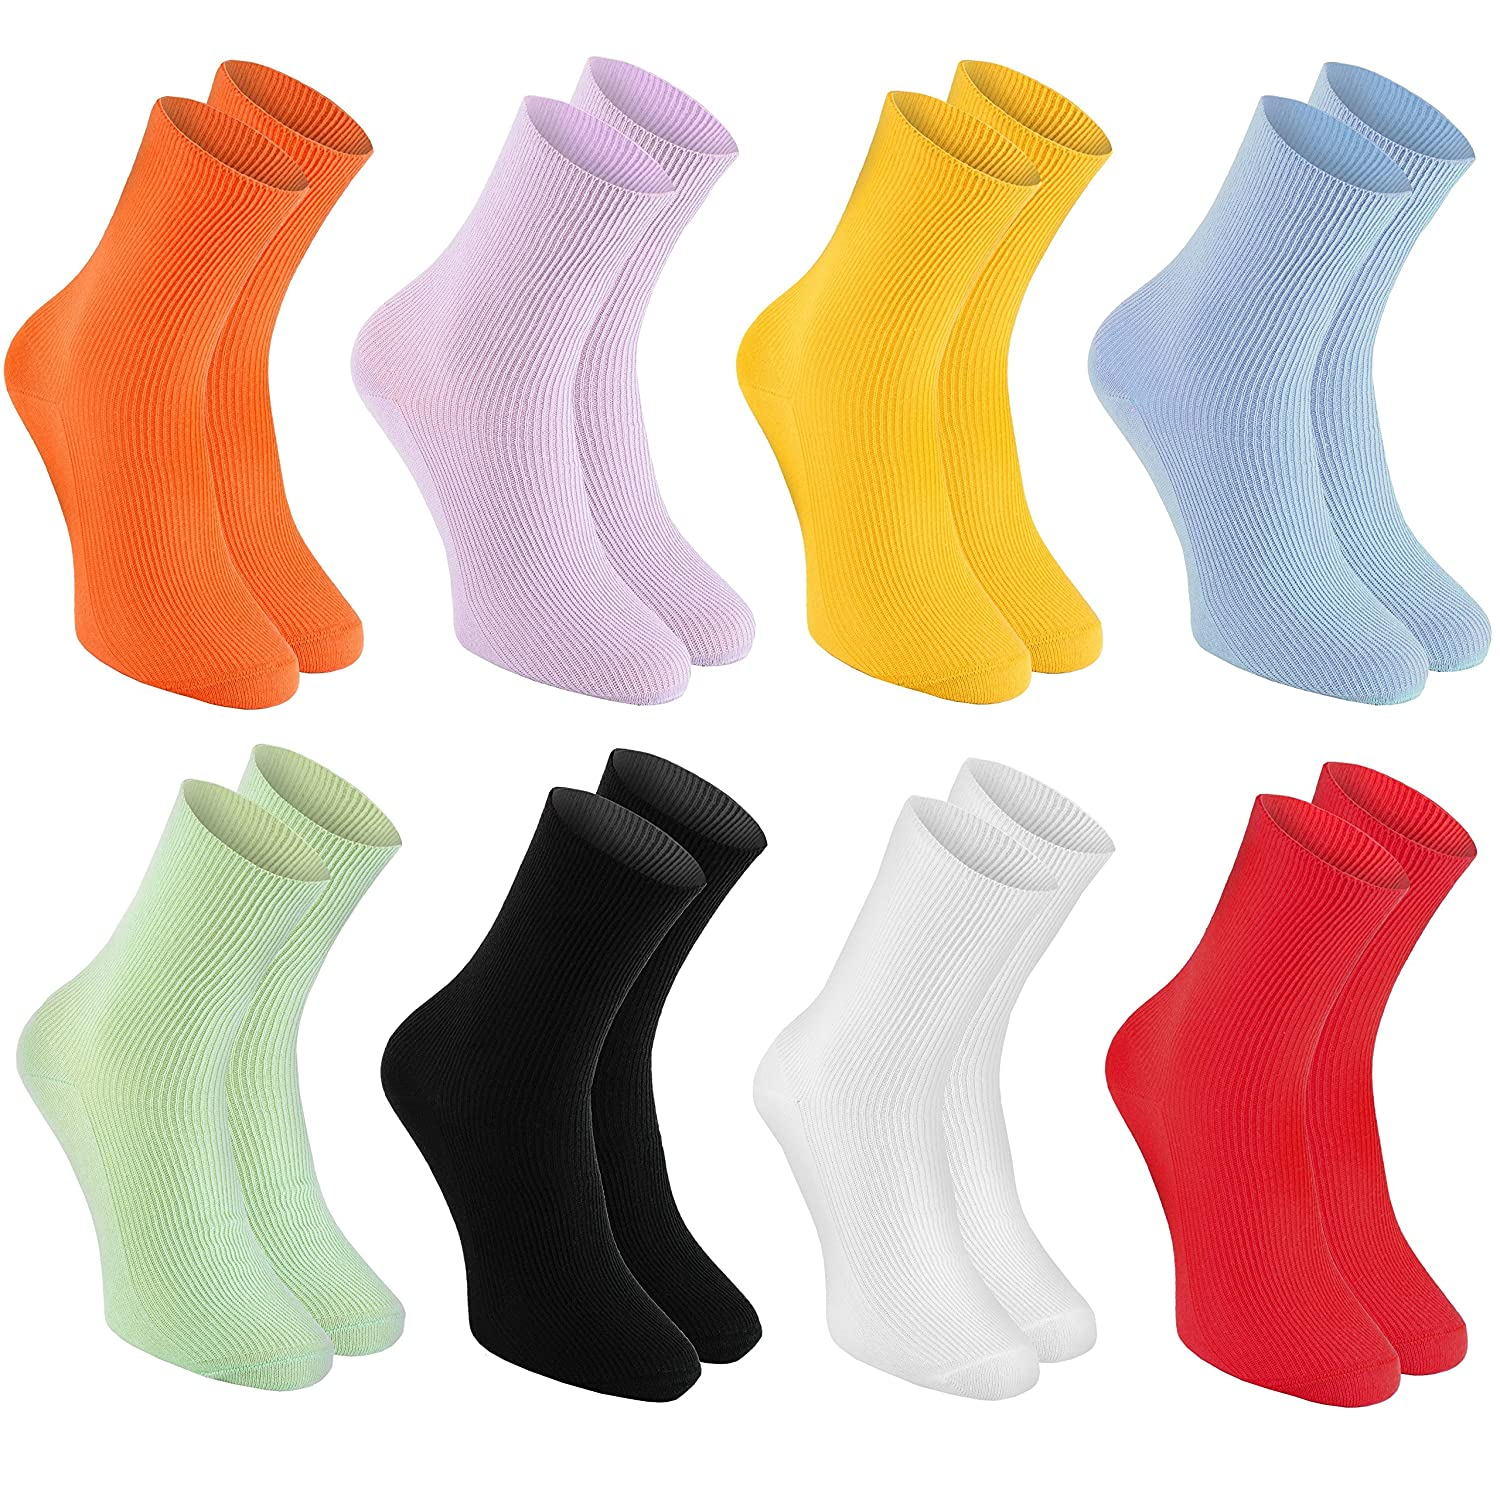 8 pairs of NON-ELASTIC LOOSE DIABETIC Cotton Socks for SWOLLEN FEET and VARICOSE VEINS, Light Cheerful Colours, Sizes 4-11,5 produced in Europe, Comfortable and Delicate, OEKO-TEX certificate